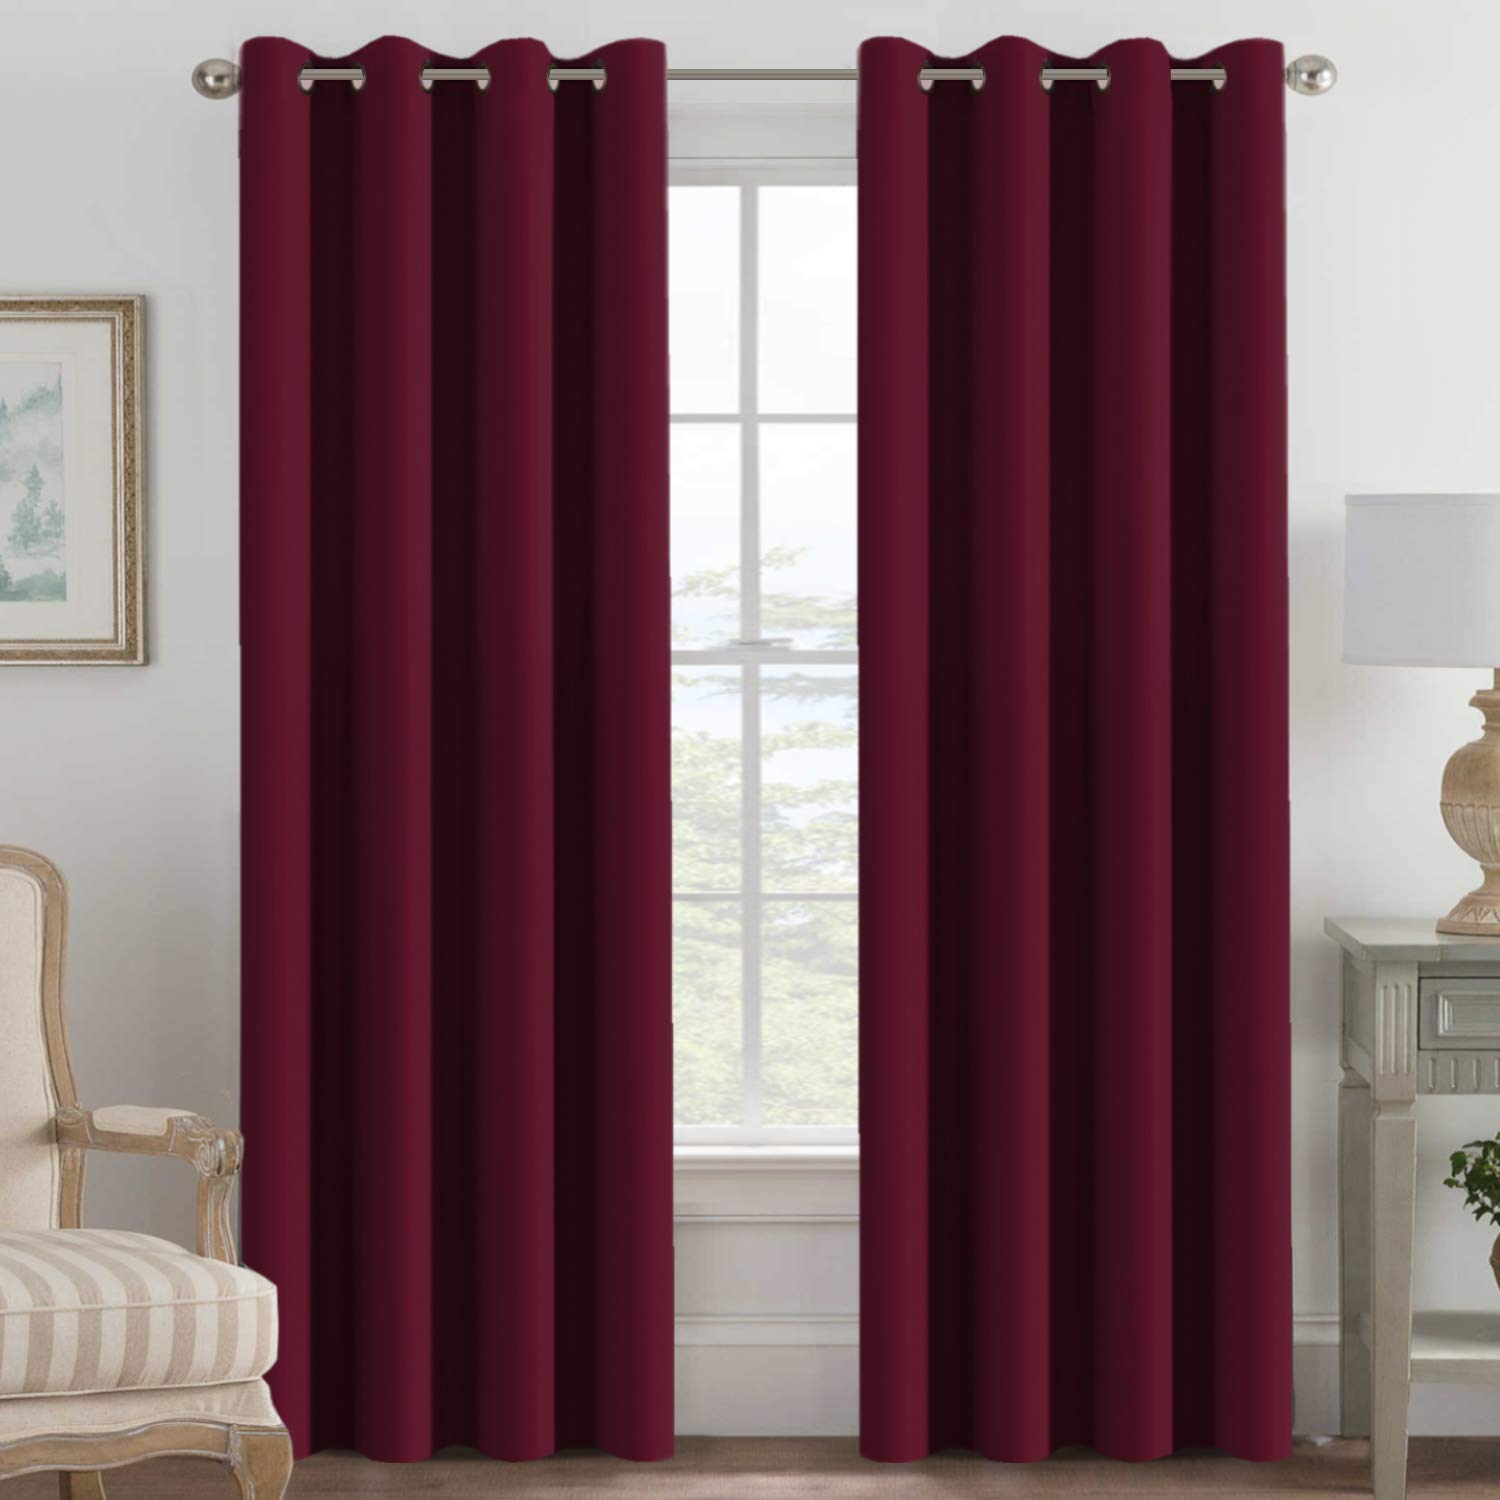 H.VERSAILTEX Blackout Curtains for Bedroom 84 Inches Length, Thermal Insulated Blackout Window Curtains for Living Room, Christmas Deals Curtain Panels, Antique Grommet - Burgundy Red, One Panel